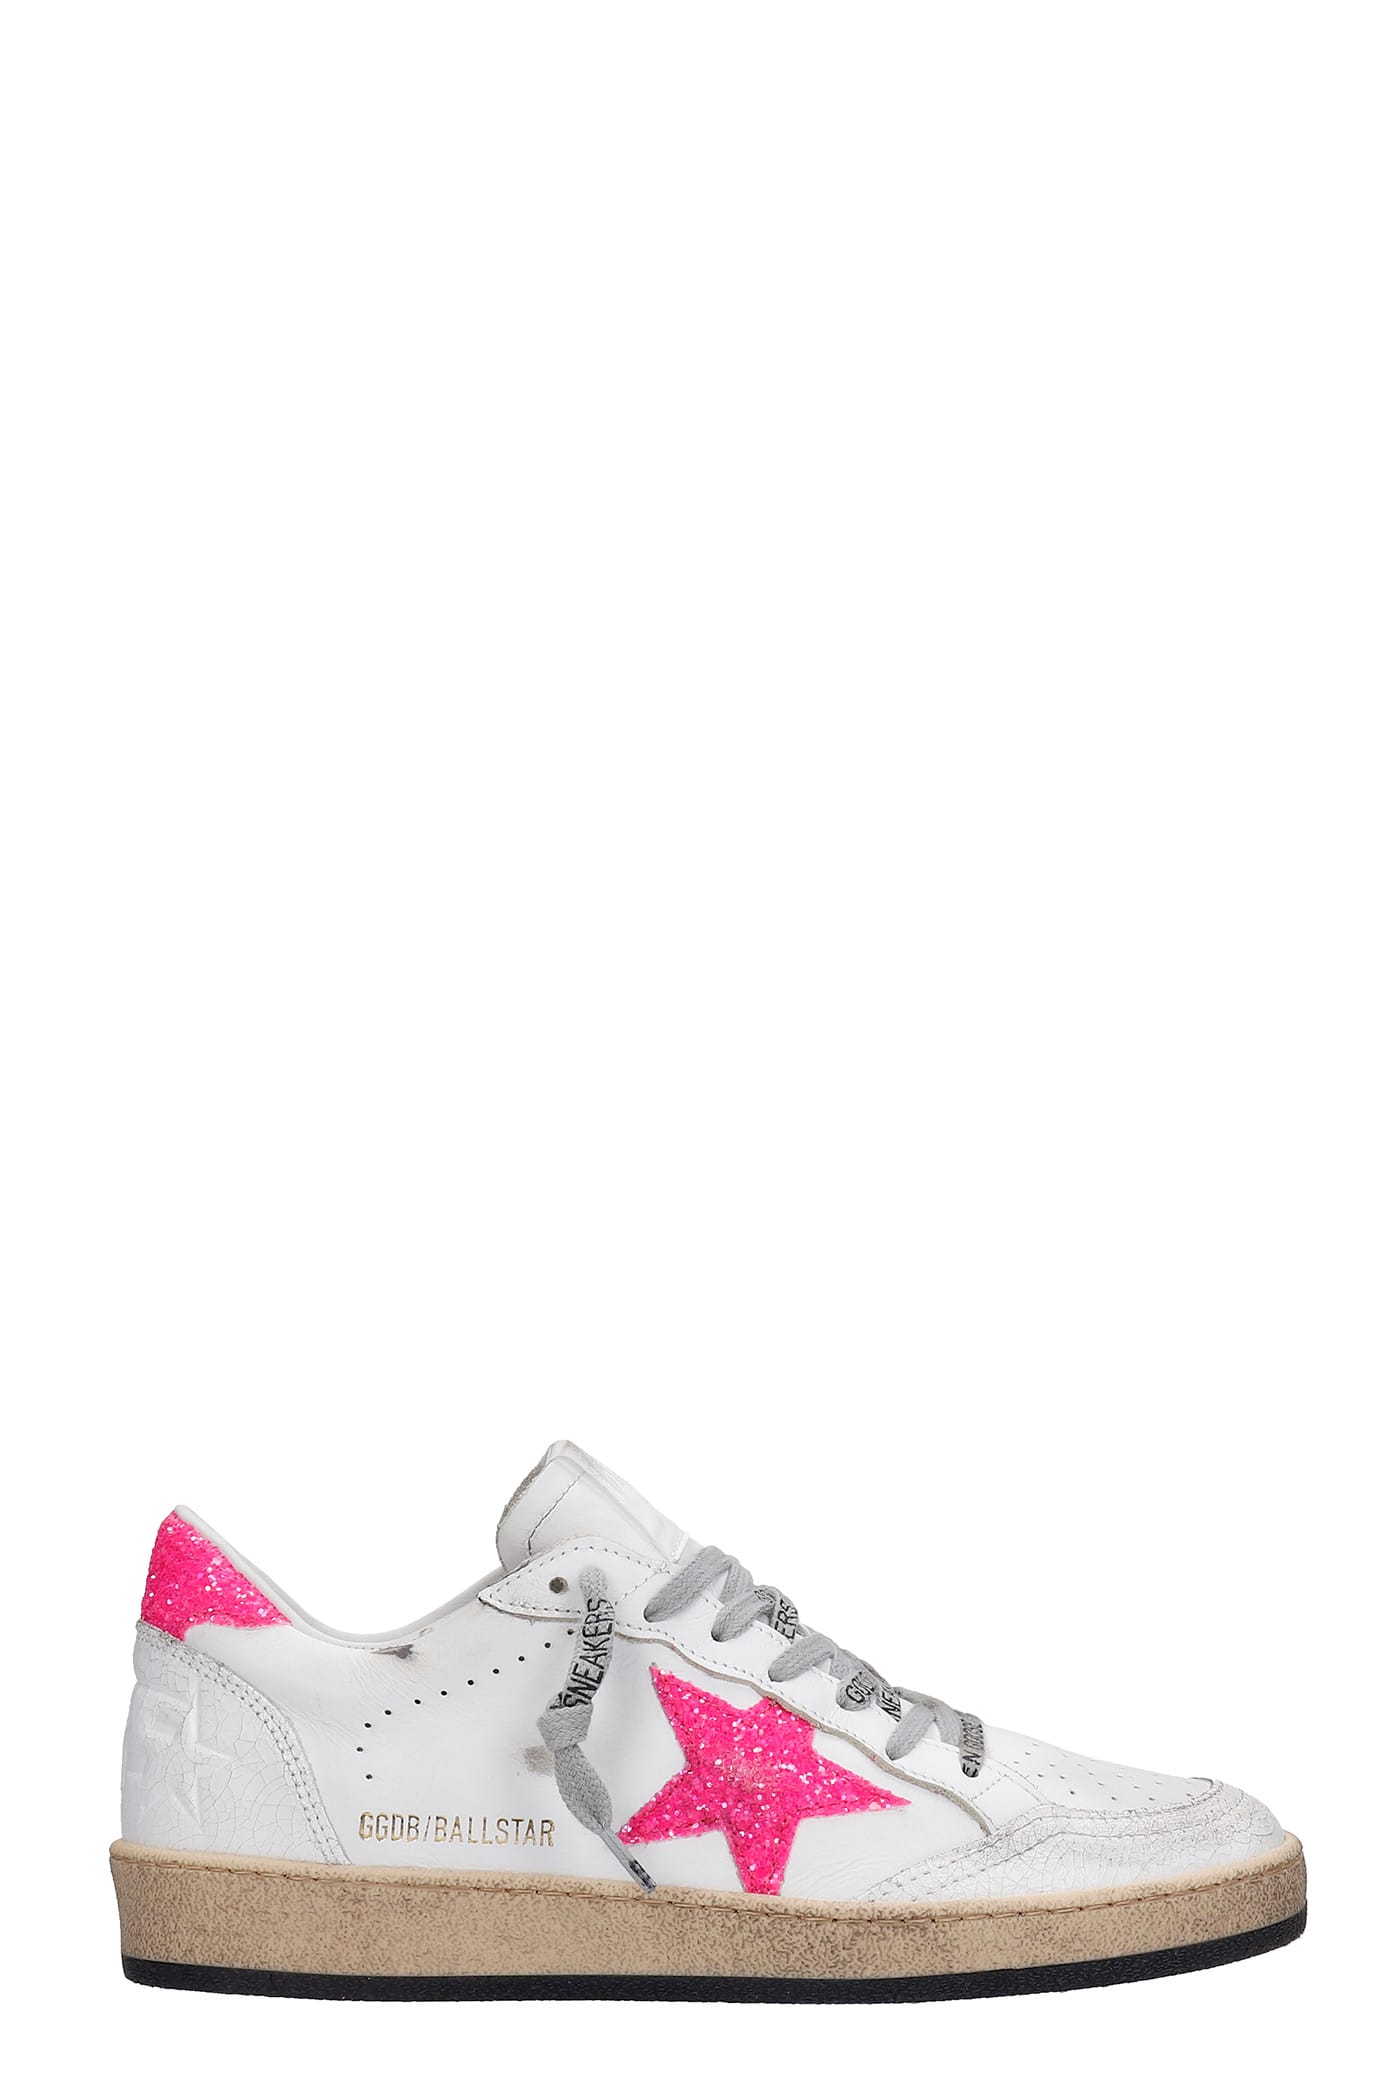 Buy Golden Goose Ball Star Sneakers In White Leather online, shop Golden Goose shoes with free shipping